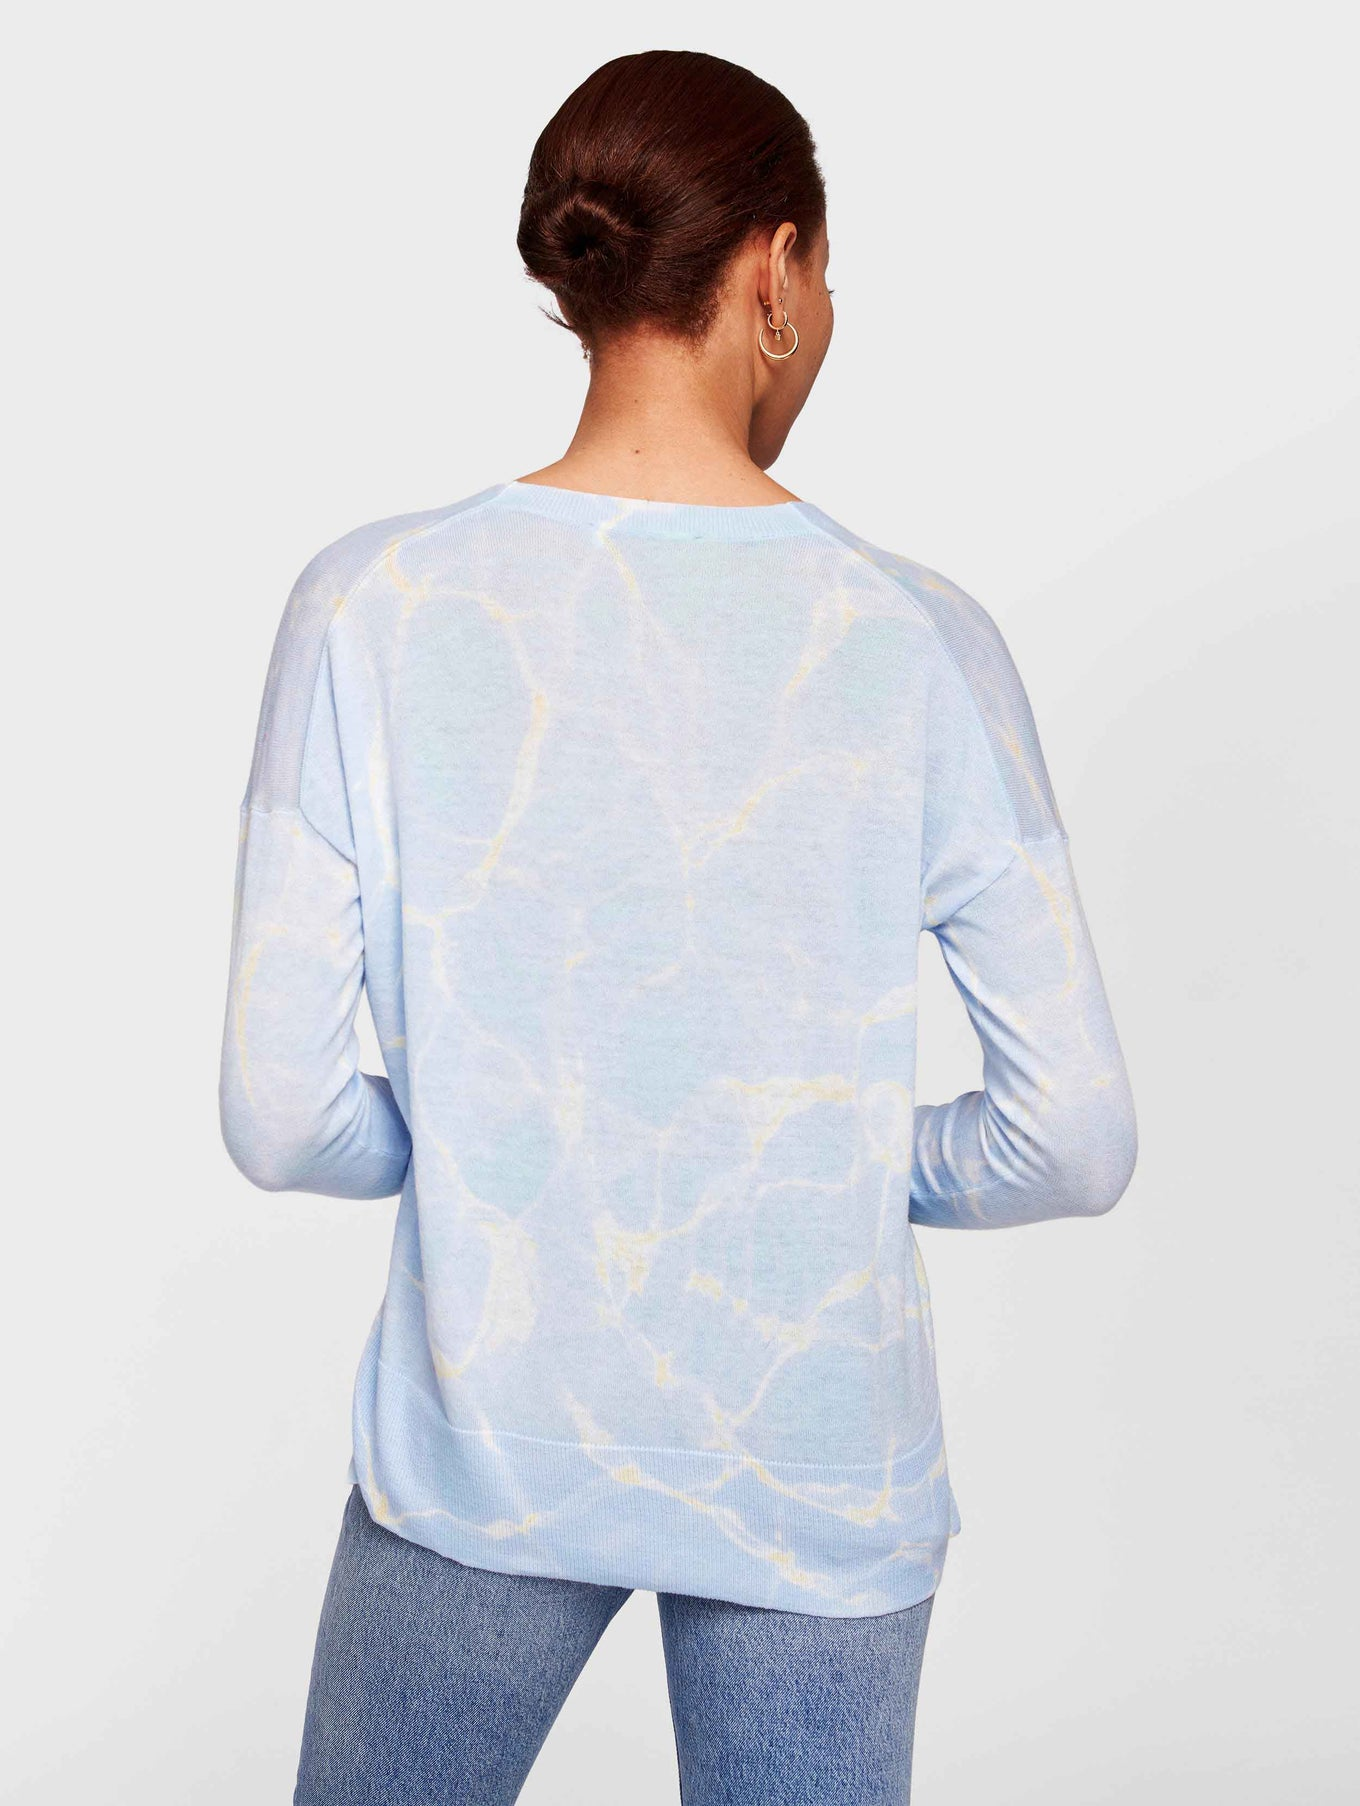 Lightweight Cotton Water Print V Neck - Blue Aquatic - Image 3